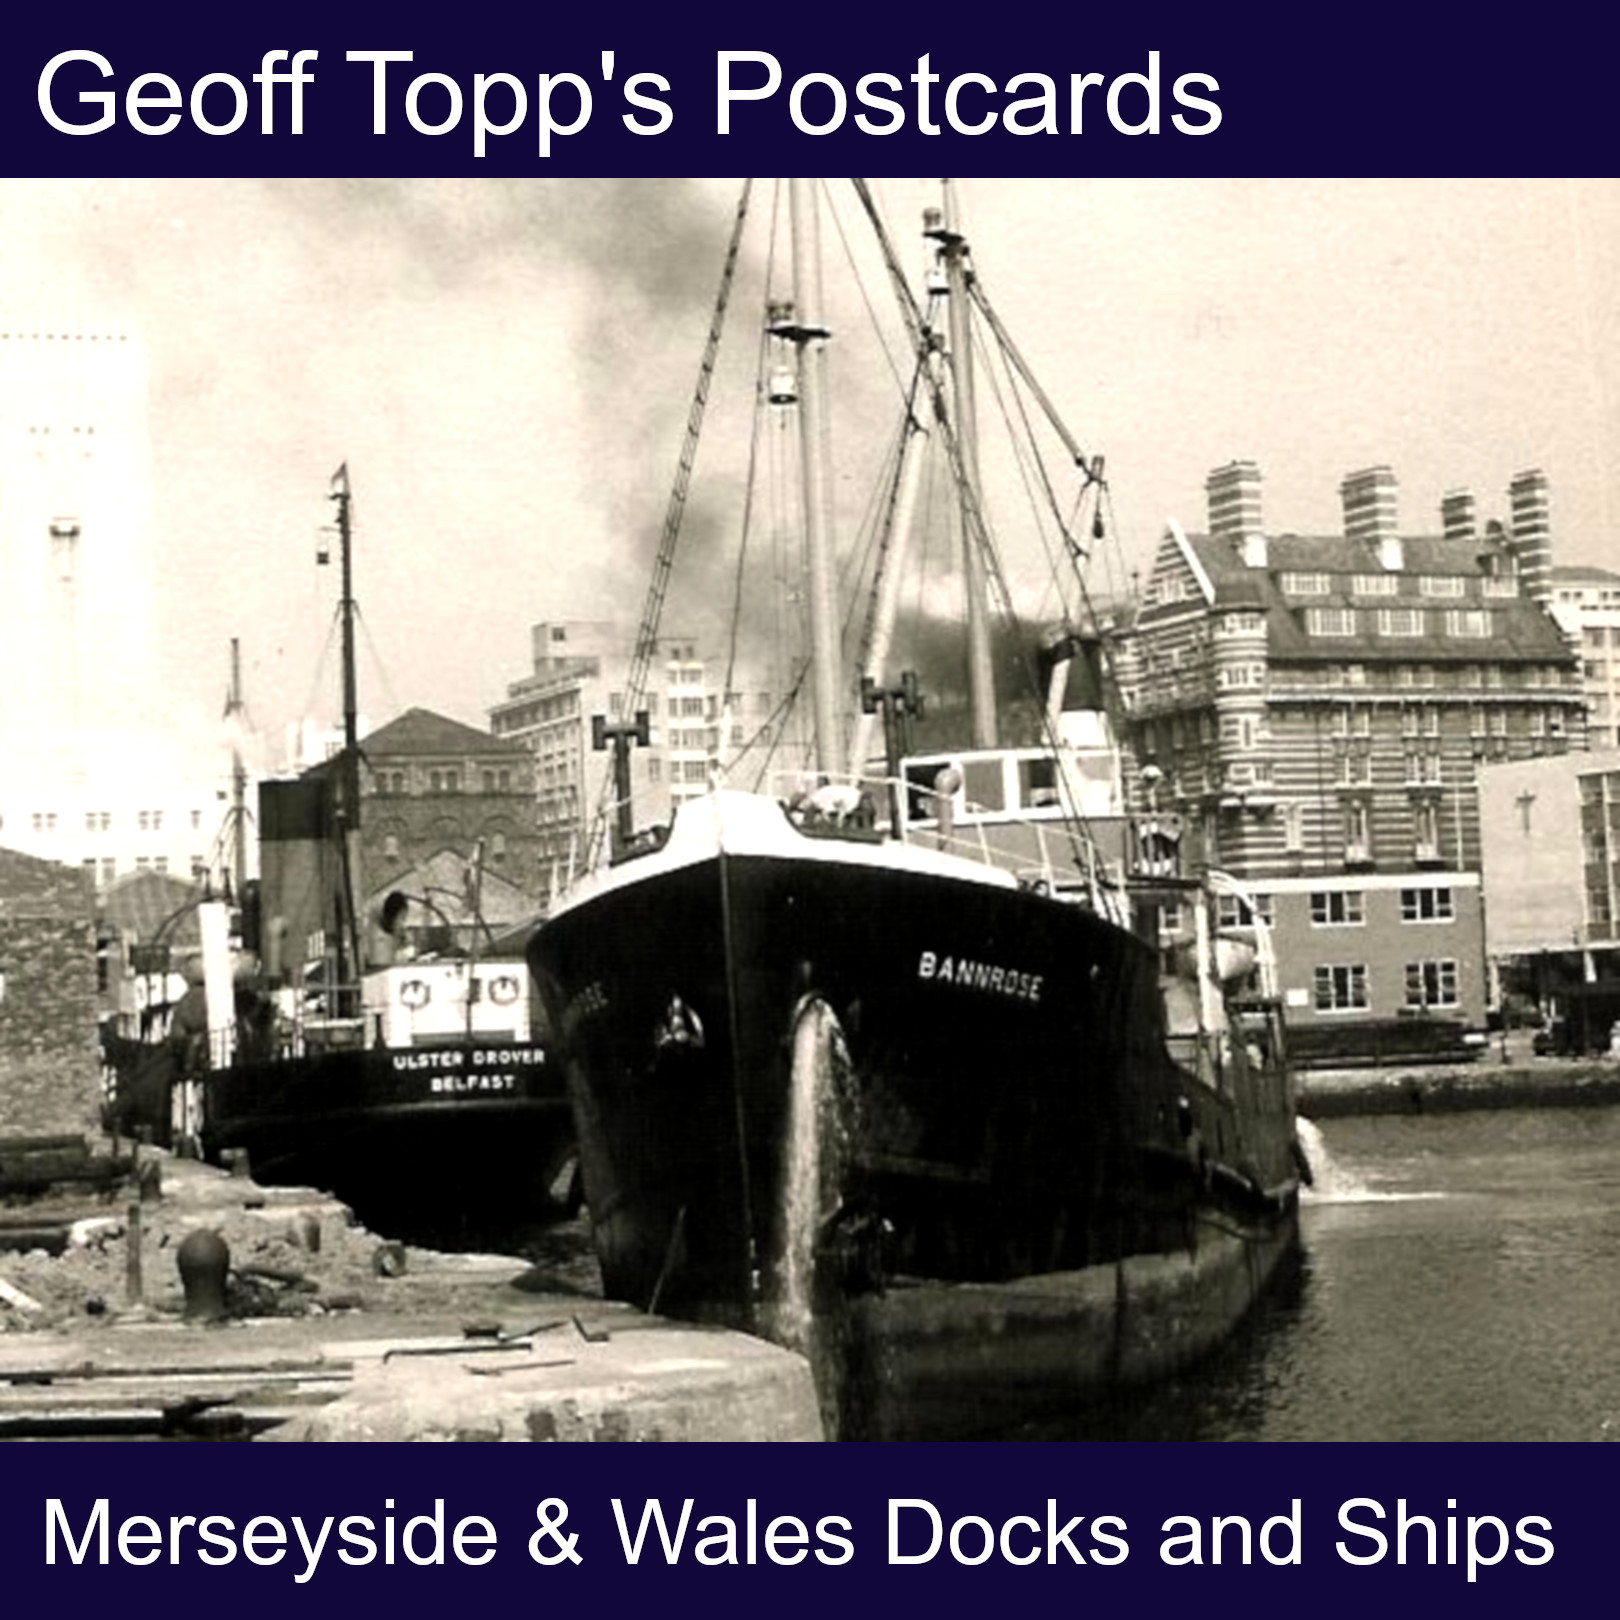 Geoff Topp Postcards